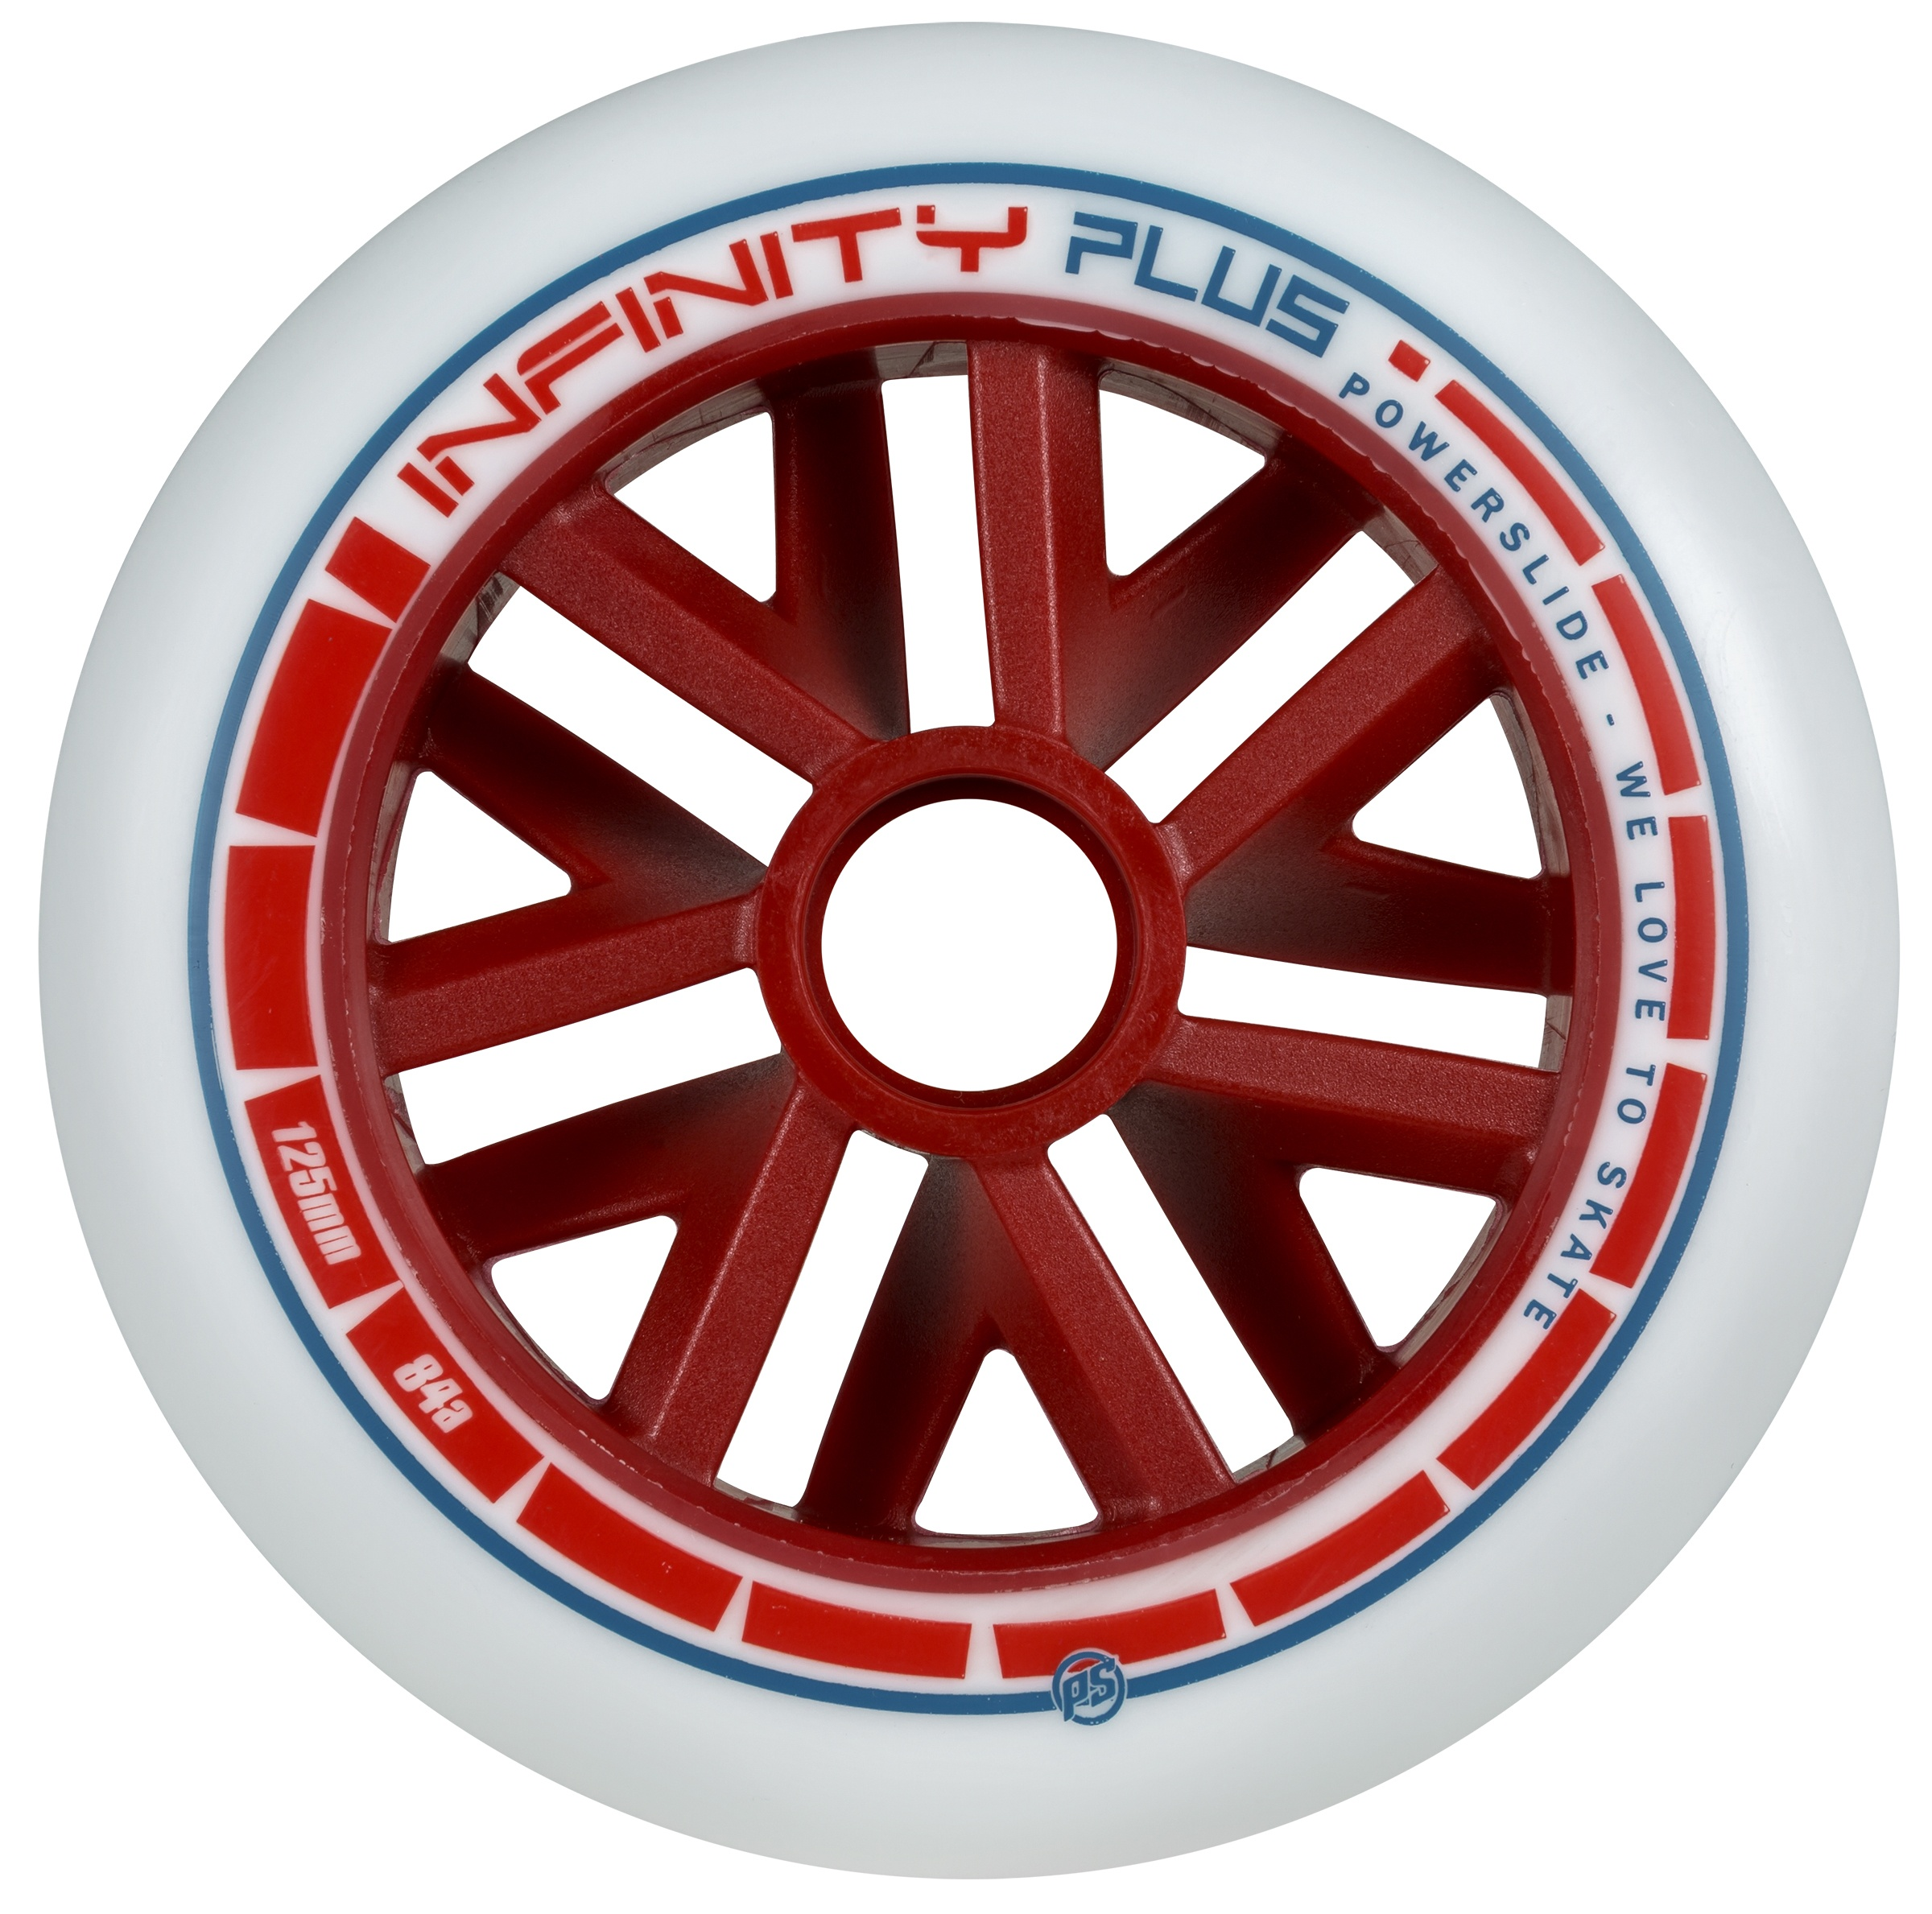 Infinity Plus Red 125mm/84A-70A, 6pck